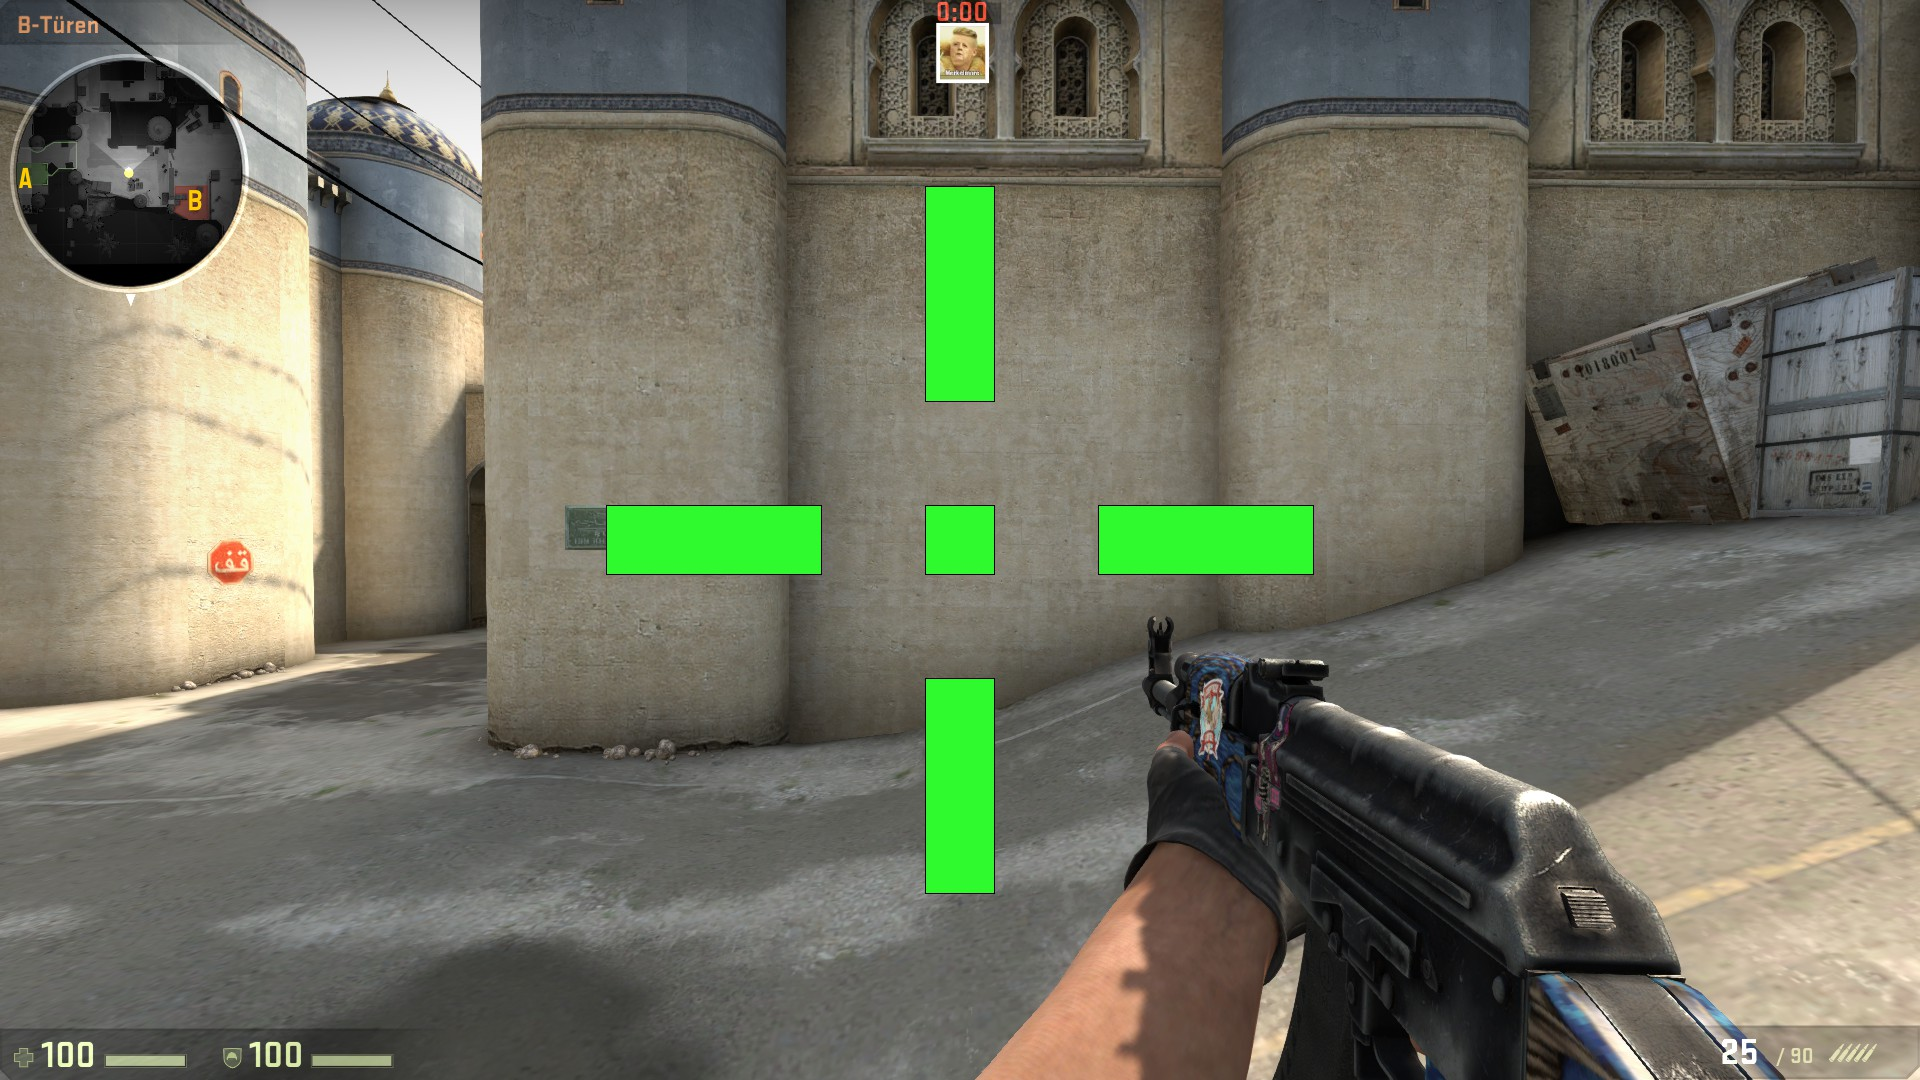 Best Crosshair Images - Reverse Search